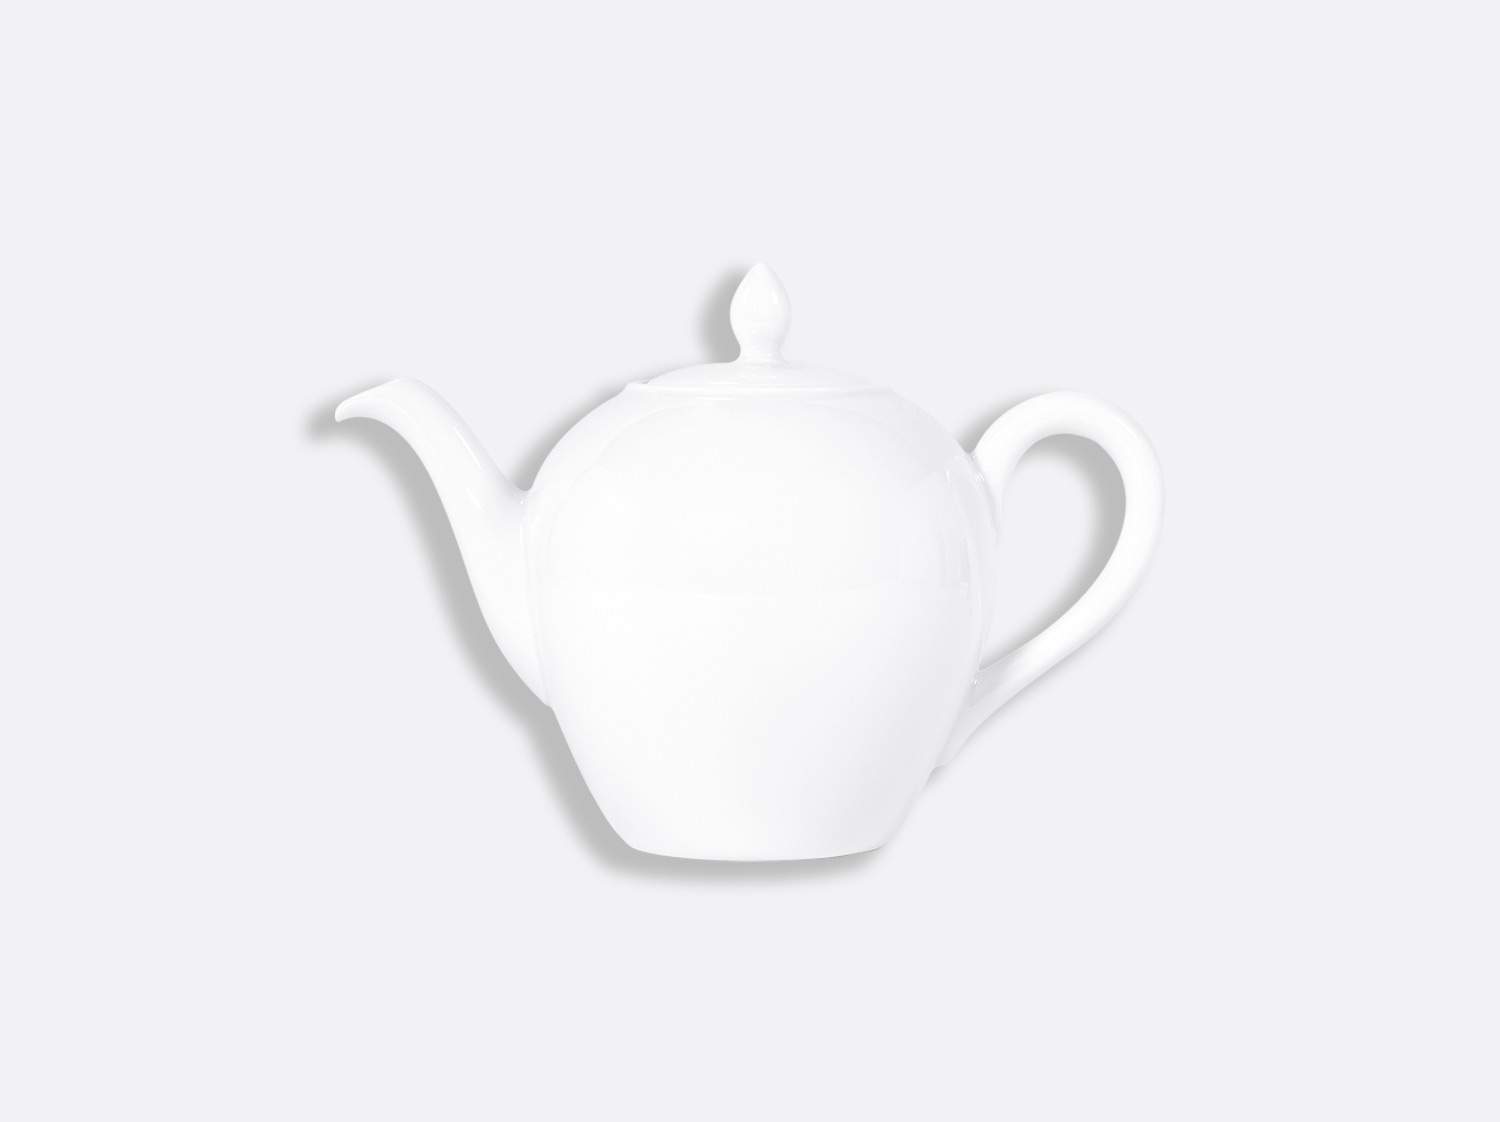 Théière Boule 4 tasses 50 cl en porcelaine de la collection BOULE BLANC Bernardaud